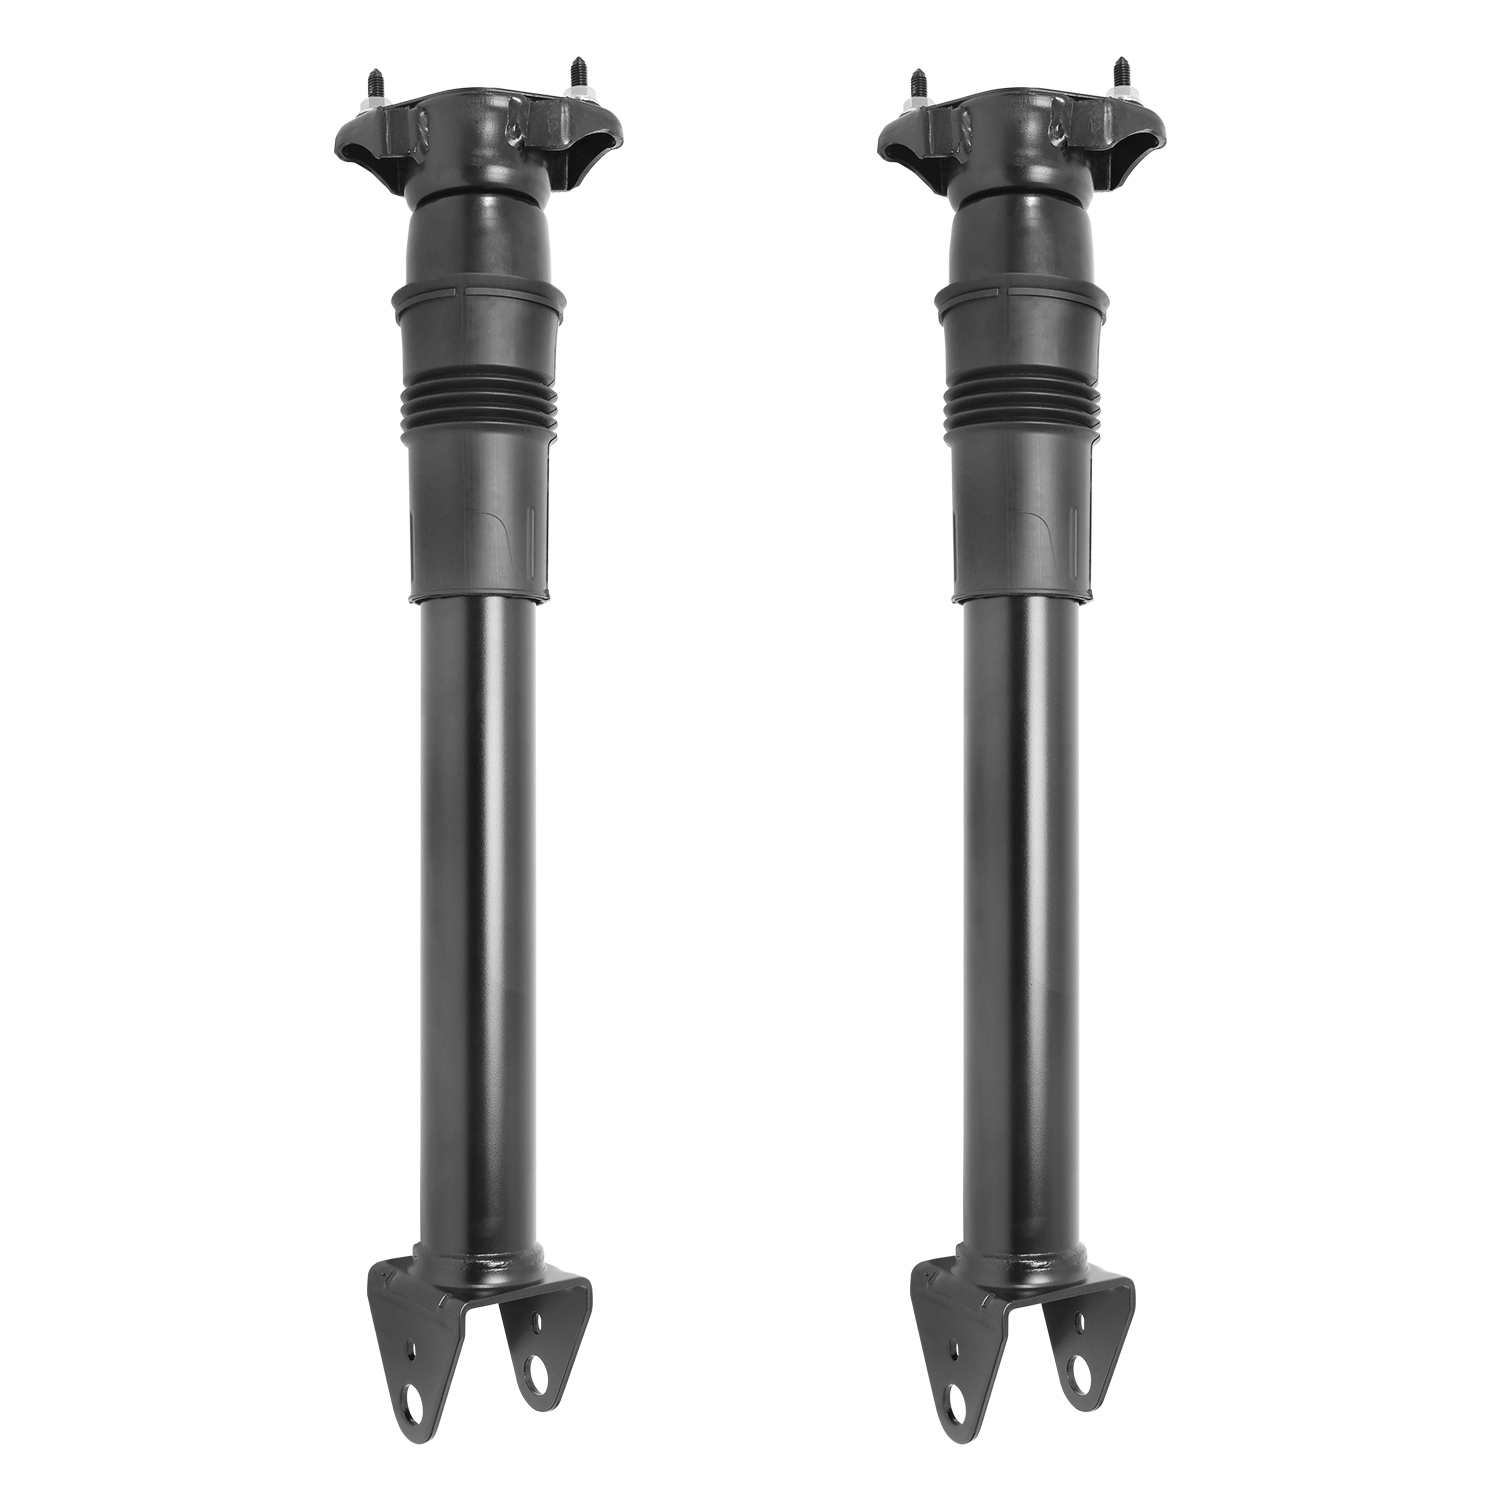 Pair of Rear Gas Shock Absorbers for Suspension in Mercedes GL, GLE & ML Class W166 X166